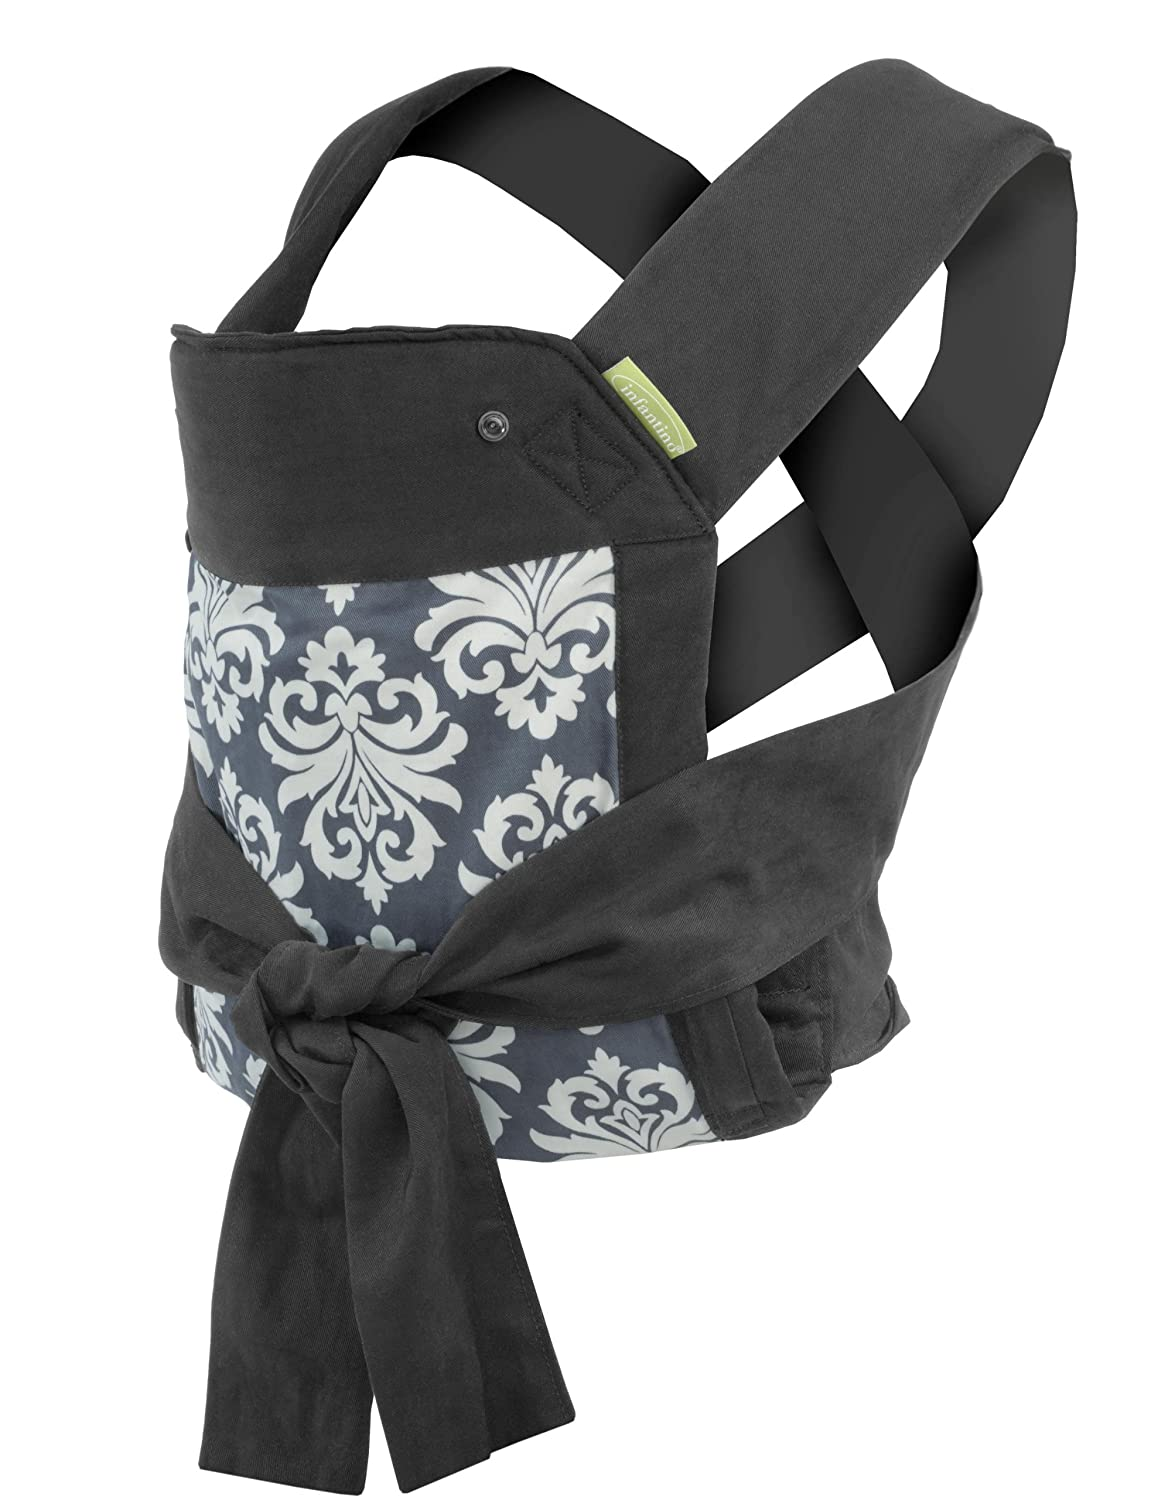 Infantino Sash Mei Tai Carrier, Black/Gray 200-122